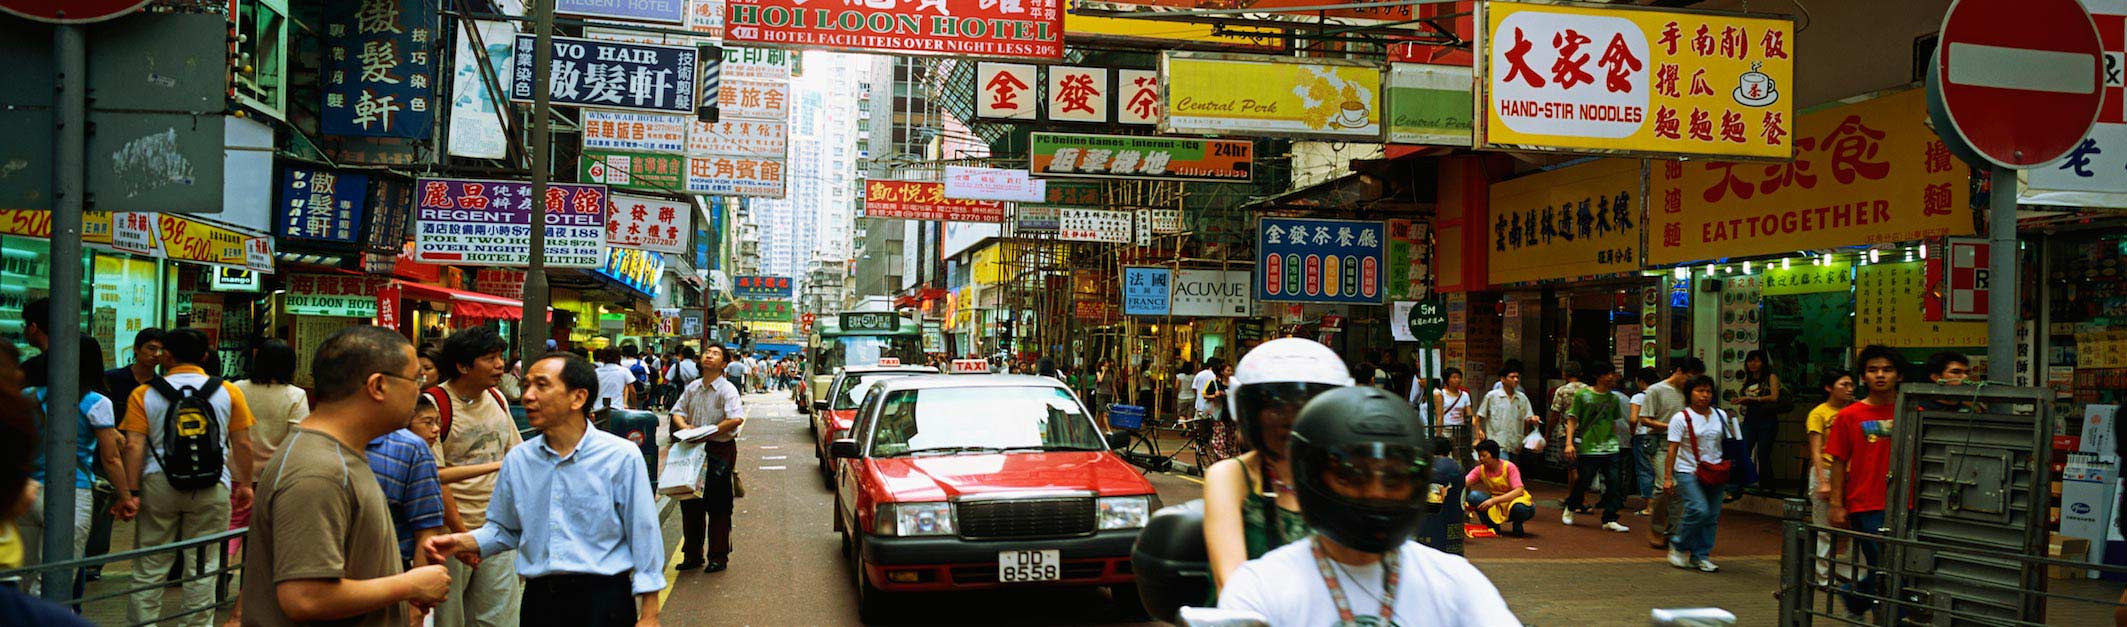 Busy street on a Hong Kong tour